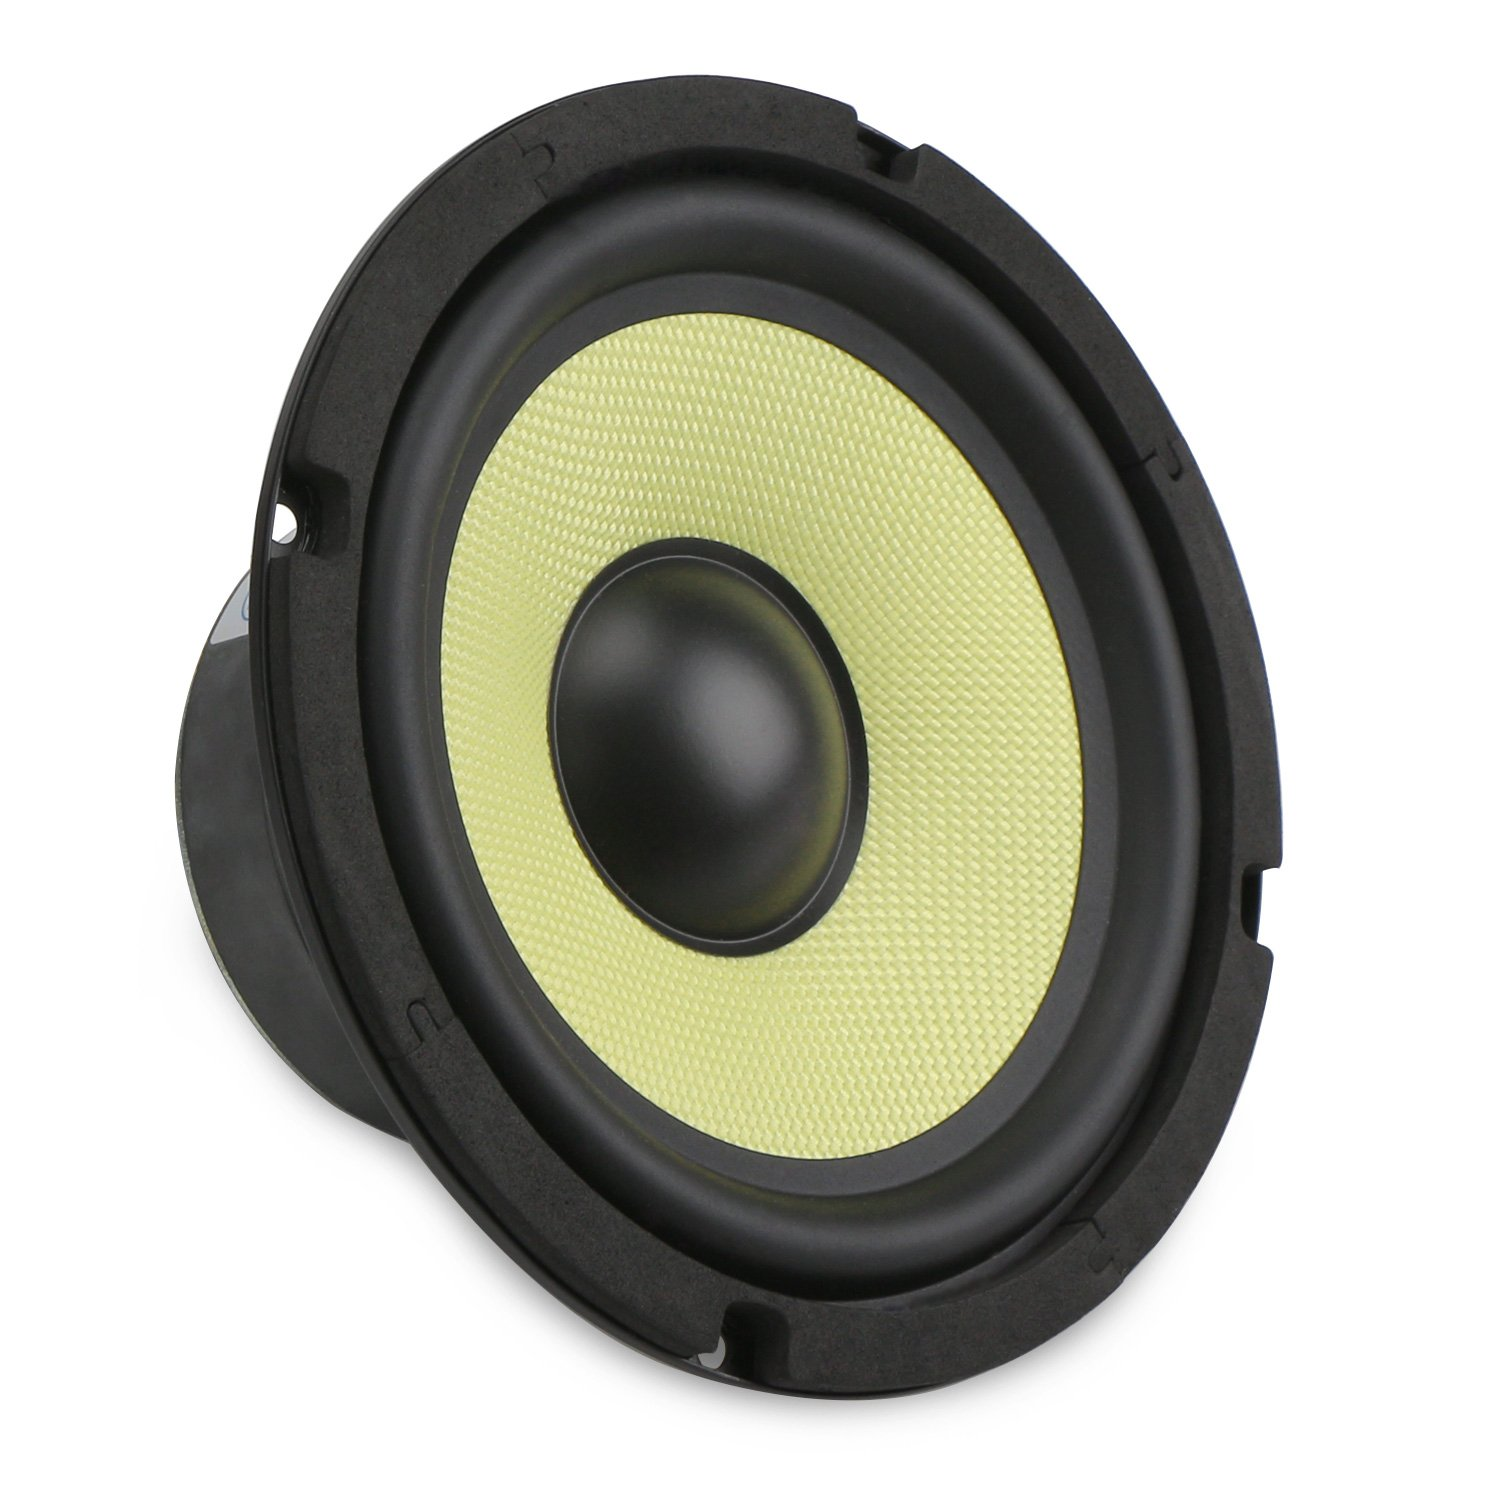 DROK 6.5'' Subwoofer Hifi Speaker Glass Fiber Mid-bass 4 Ohm Audio Speakers, 88Db High Sensitivity Home Audio Stereo Speaker, 35W Loudspeaker DIY Component Speakers Car Speakers For Sound System